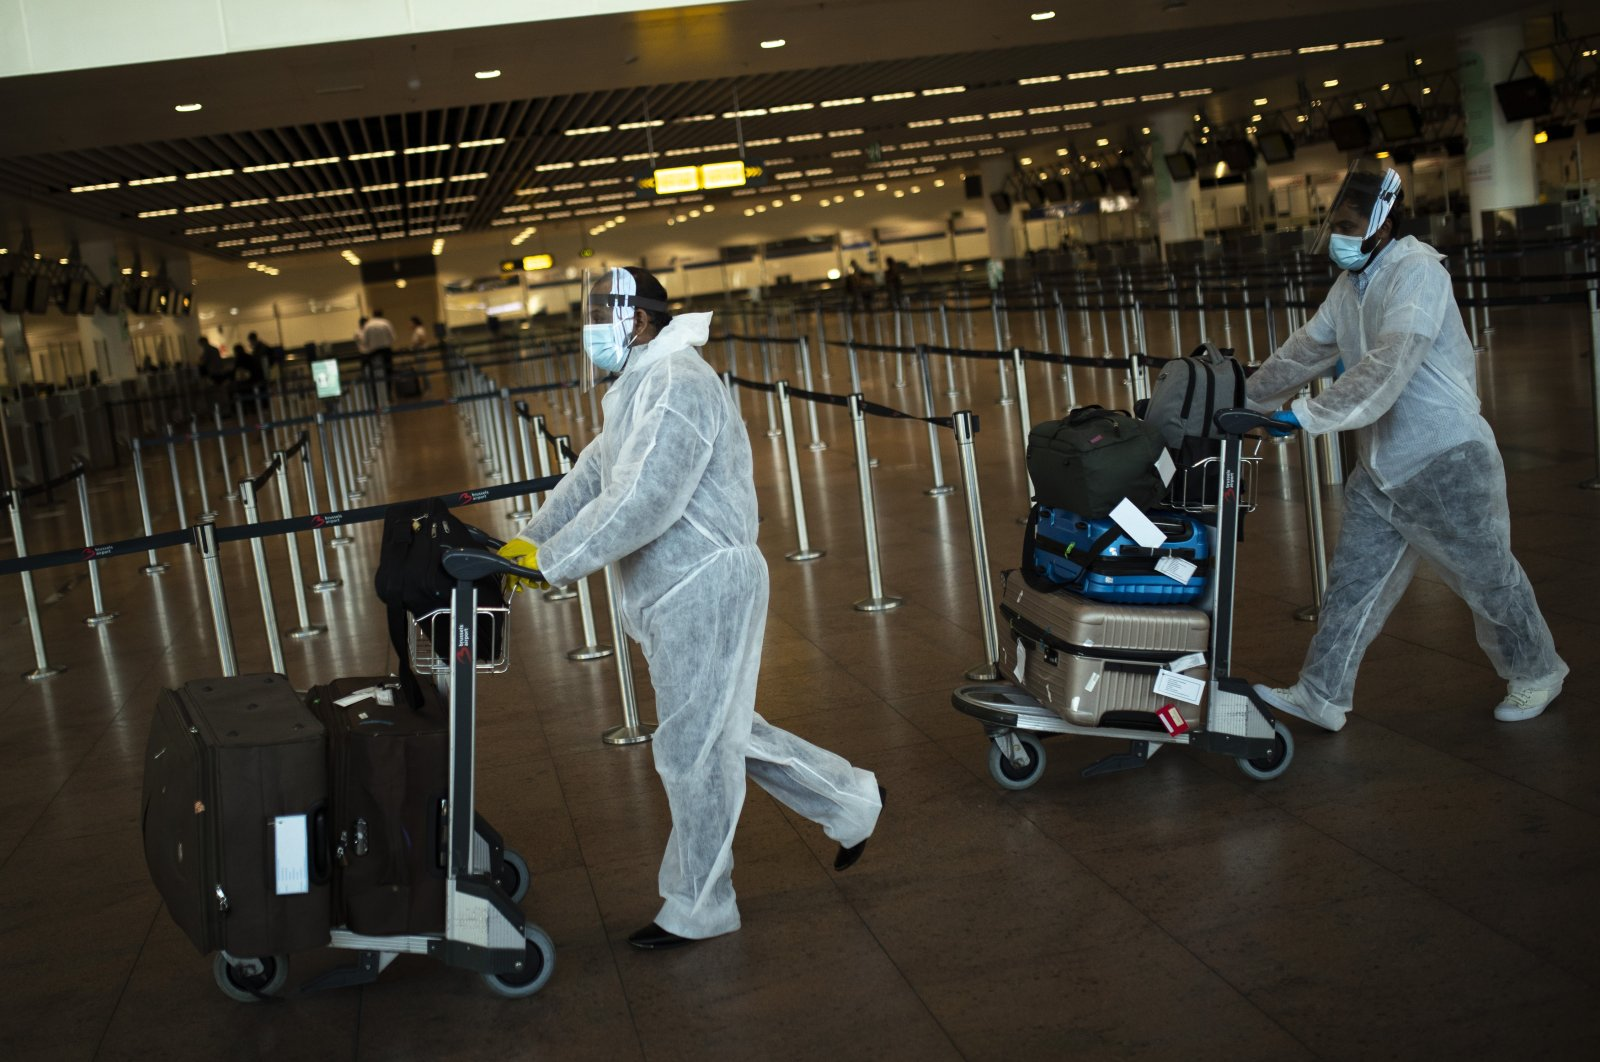 Passengers, wearing full protective gear to protect against the spread of coronavirus, push their luggage to a check-in counter at Zaventem international airport in Brussels, July 29, 2020. (AP Photo)